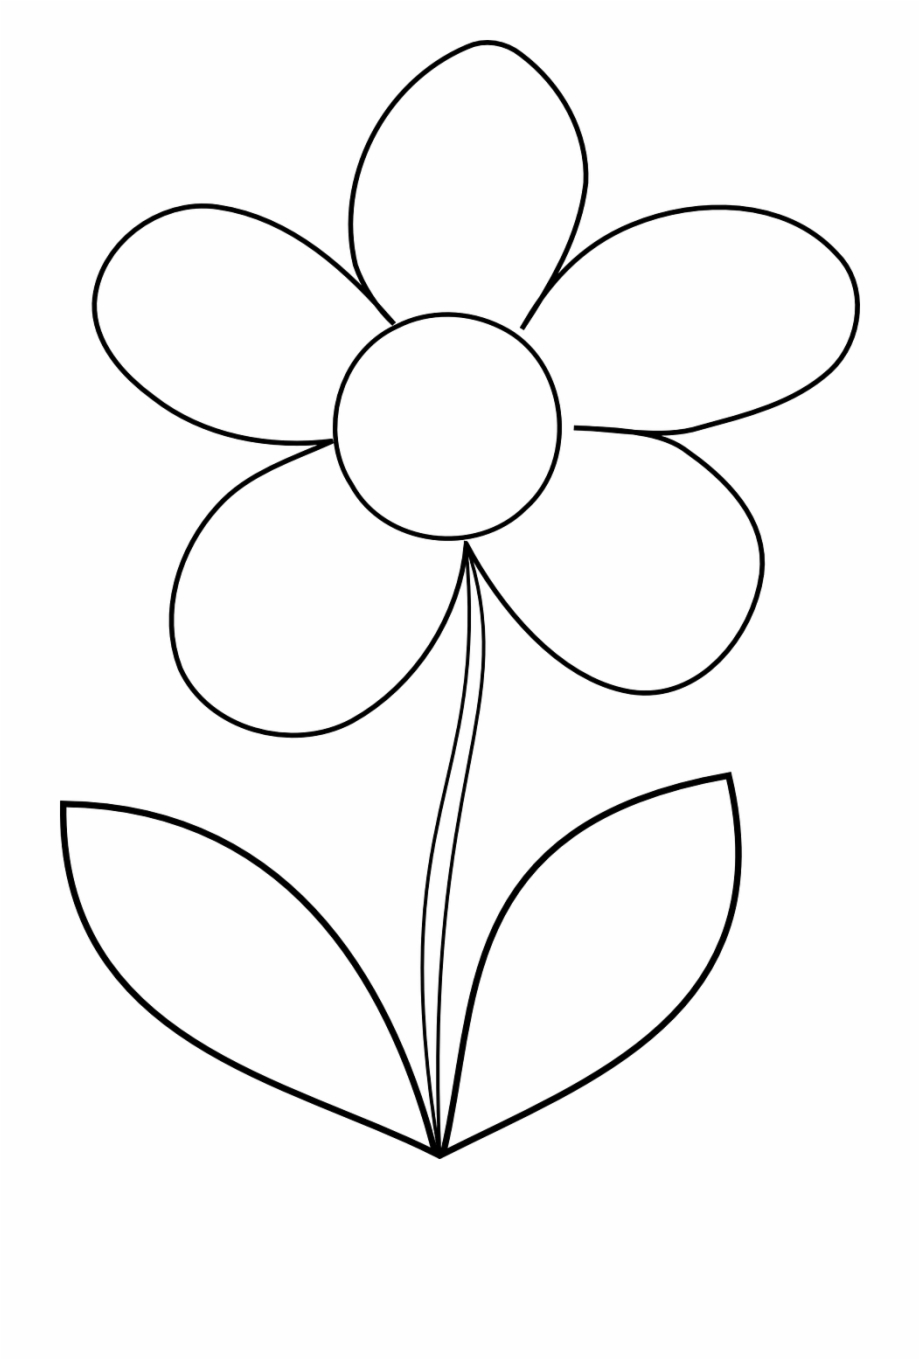 outline pictures of flowers for colouring flower daisy spring outline png image easy printable colouring pictures outline for flowers of